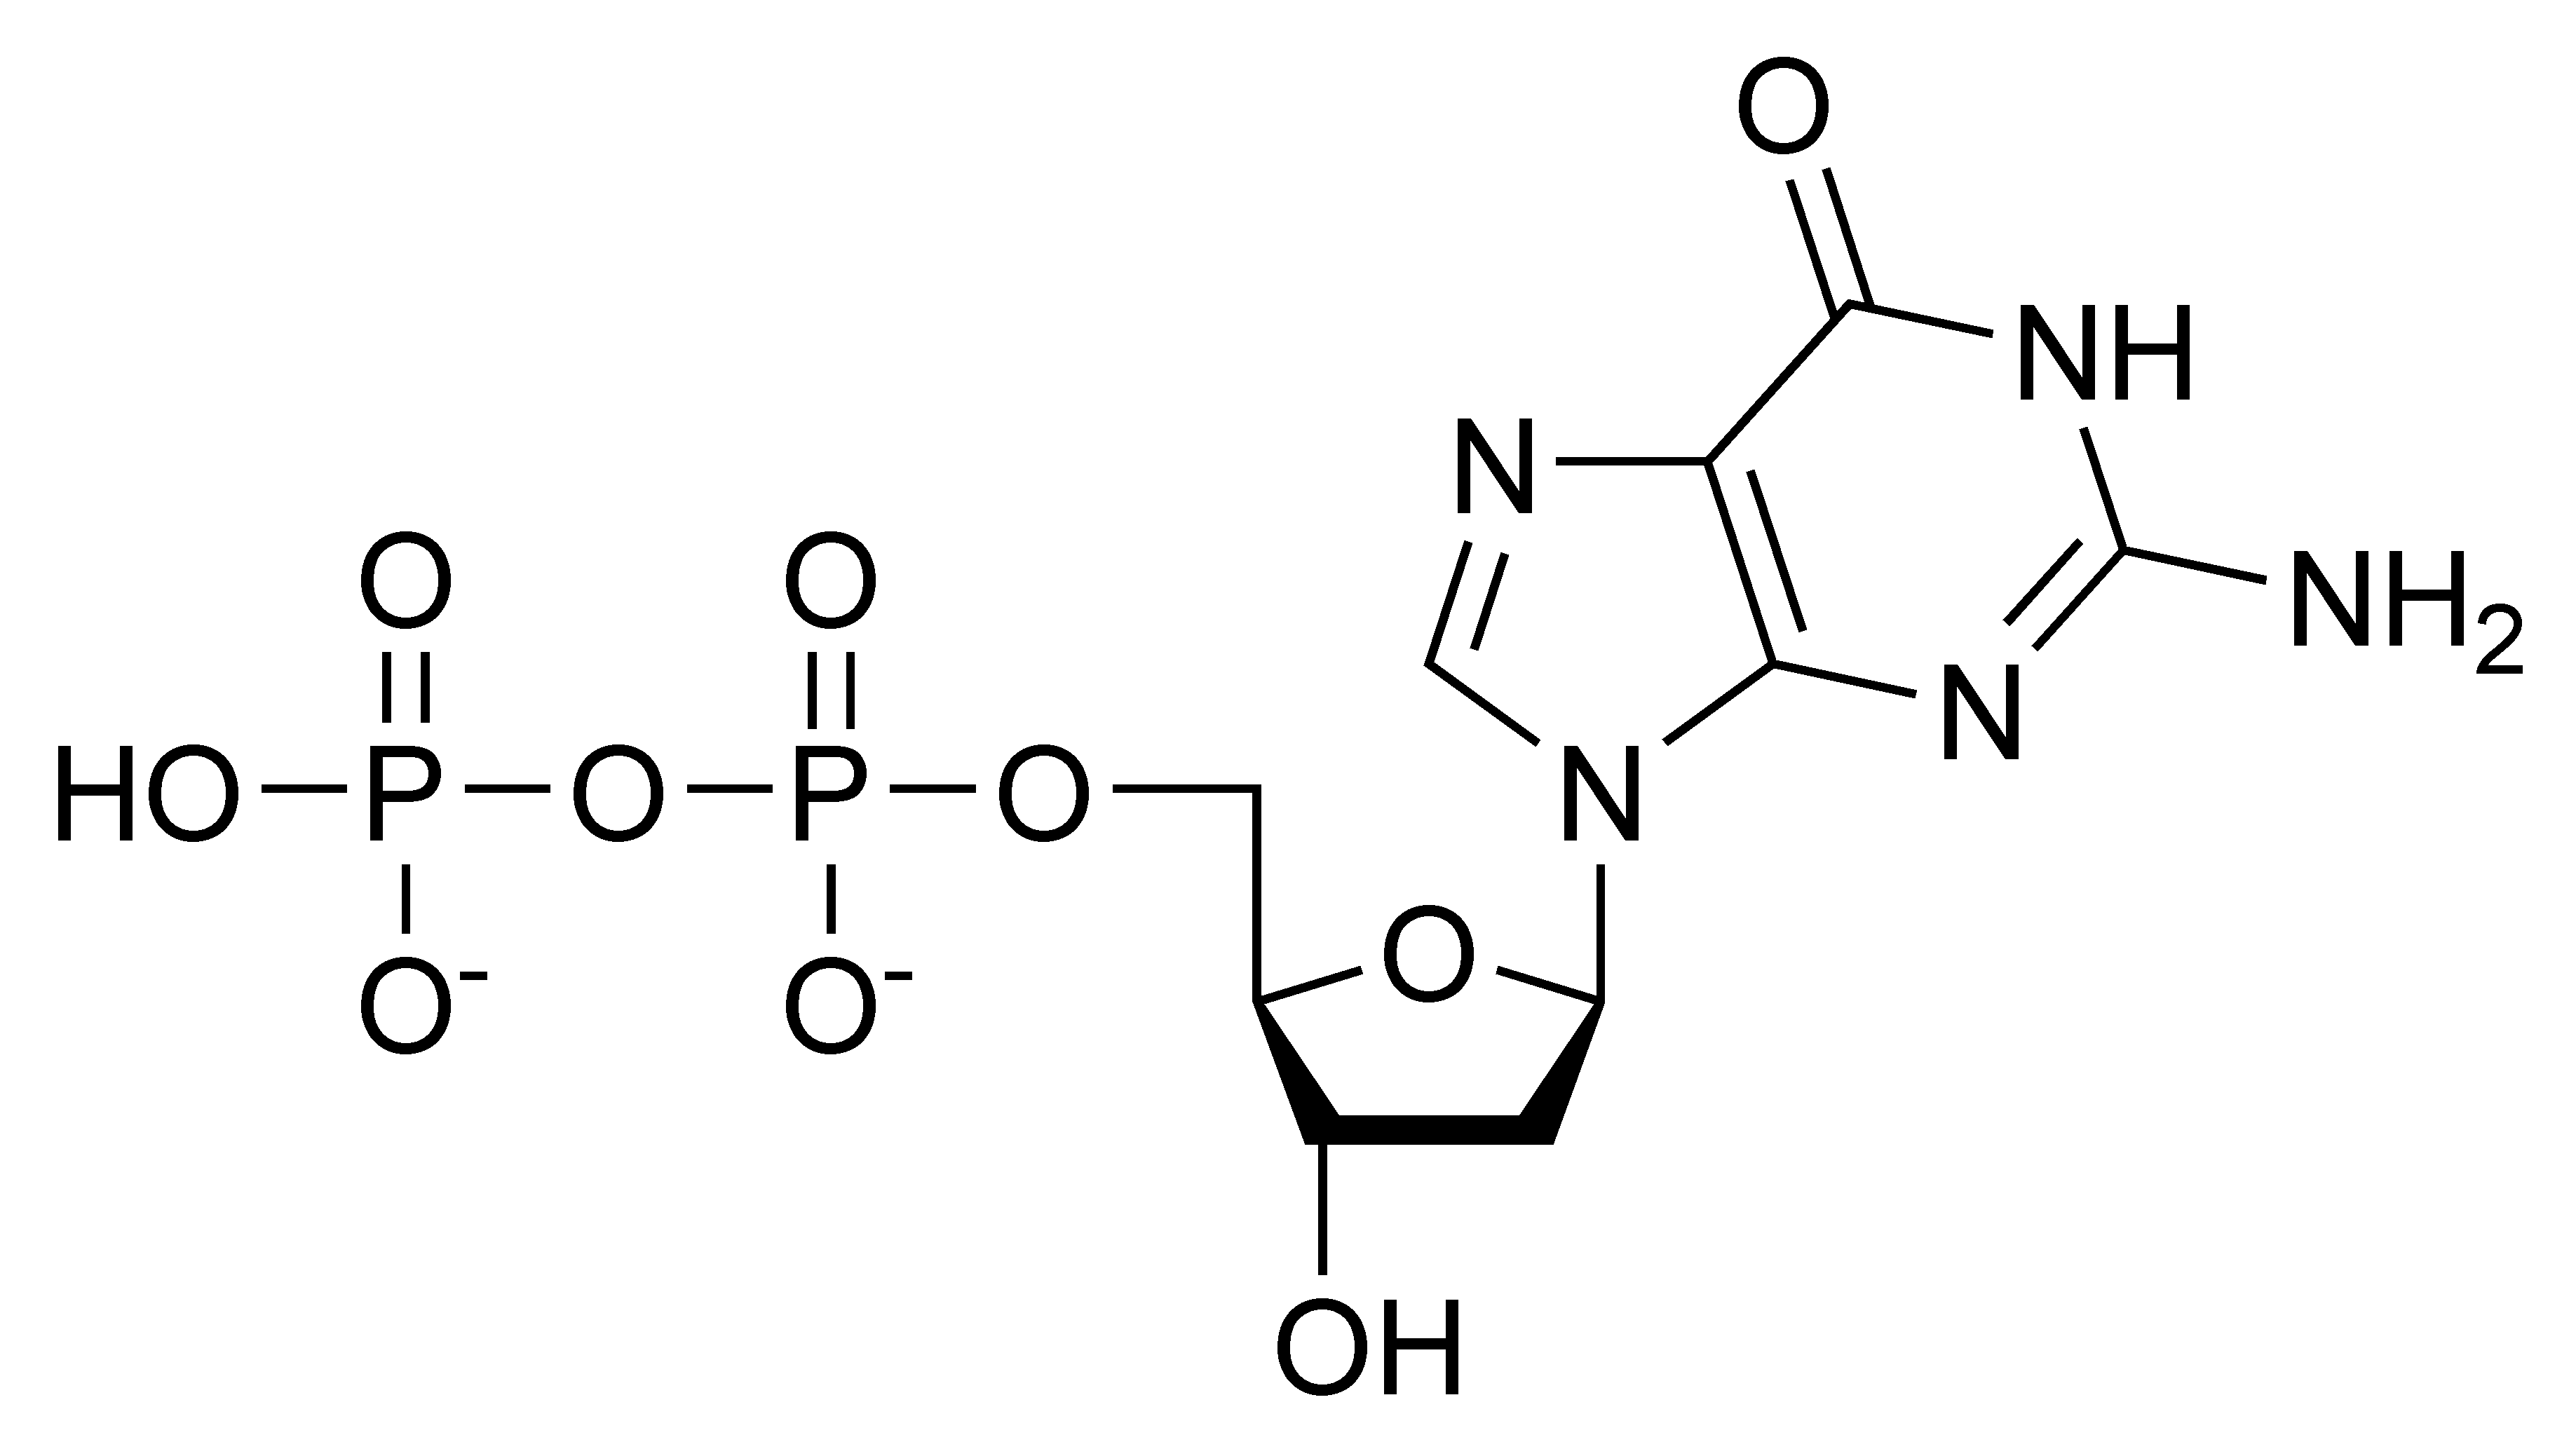 Chemical structure of deoxyguanosine diphosphate